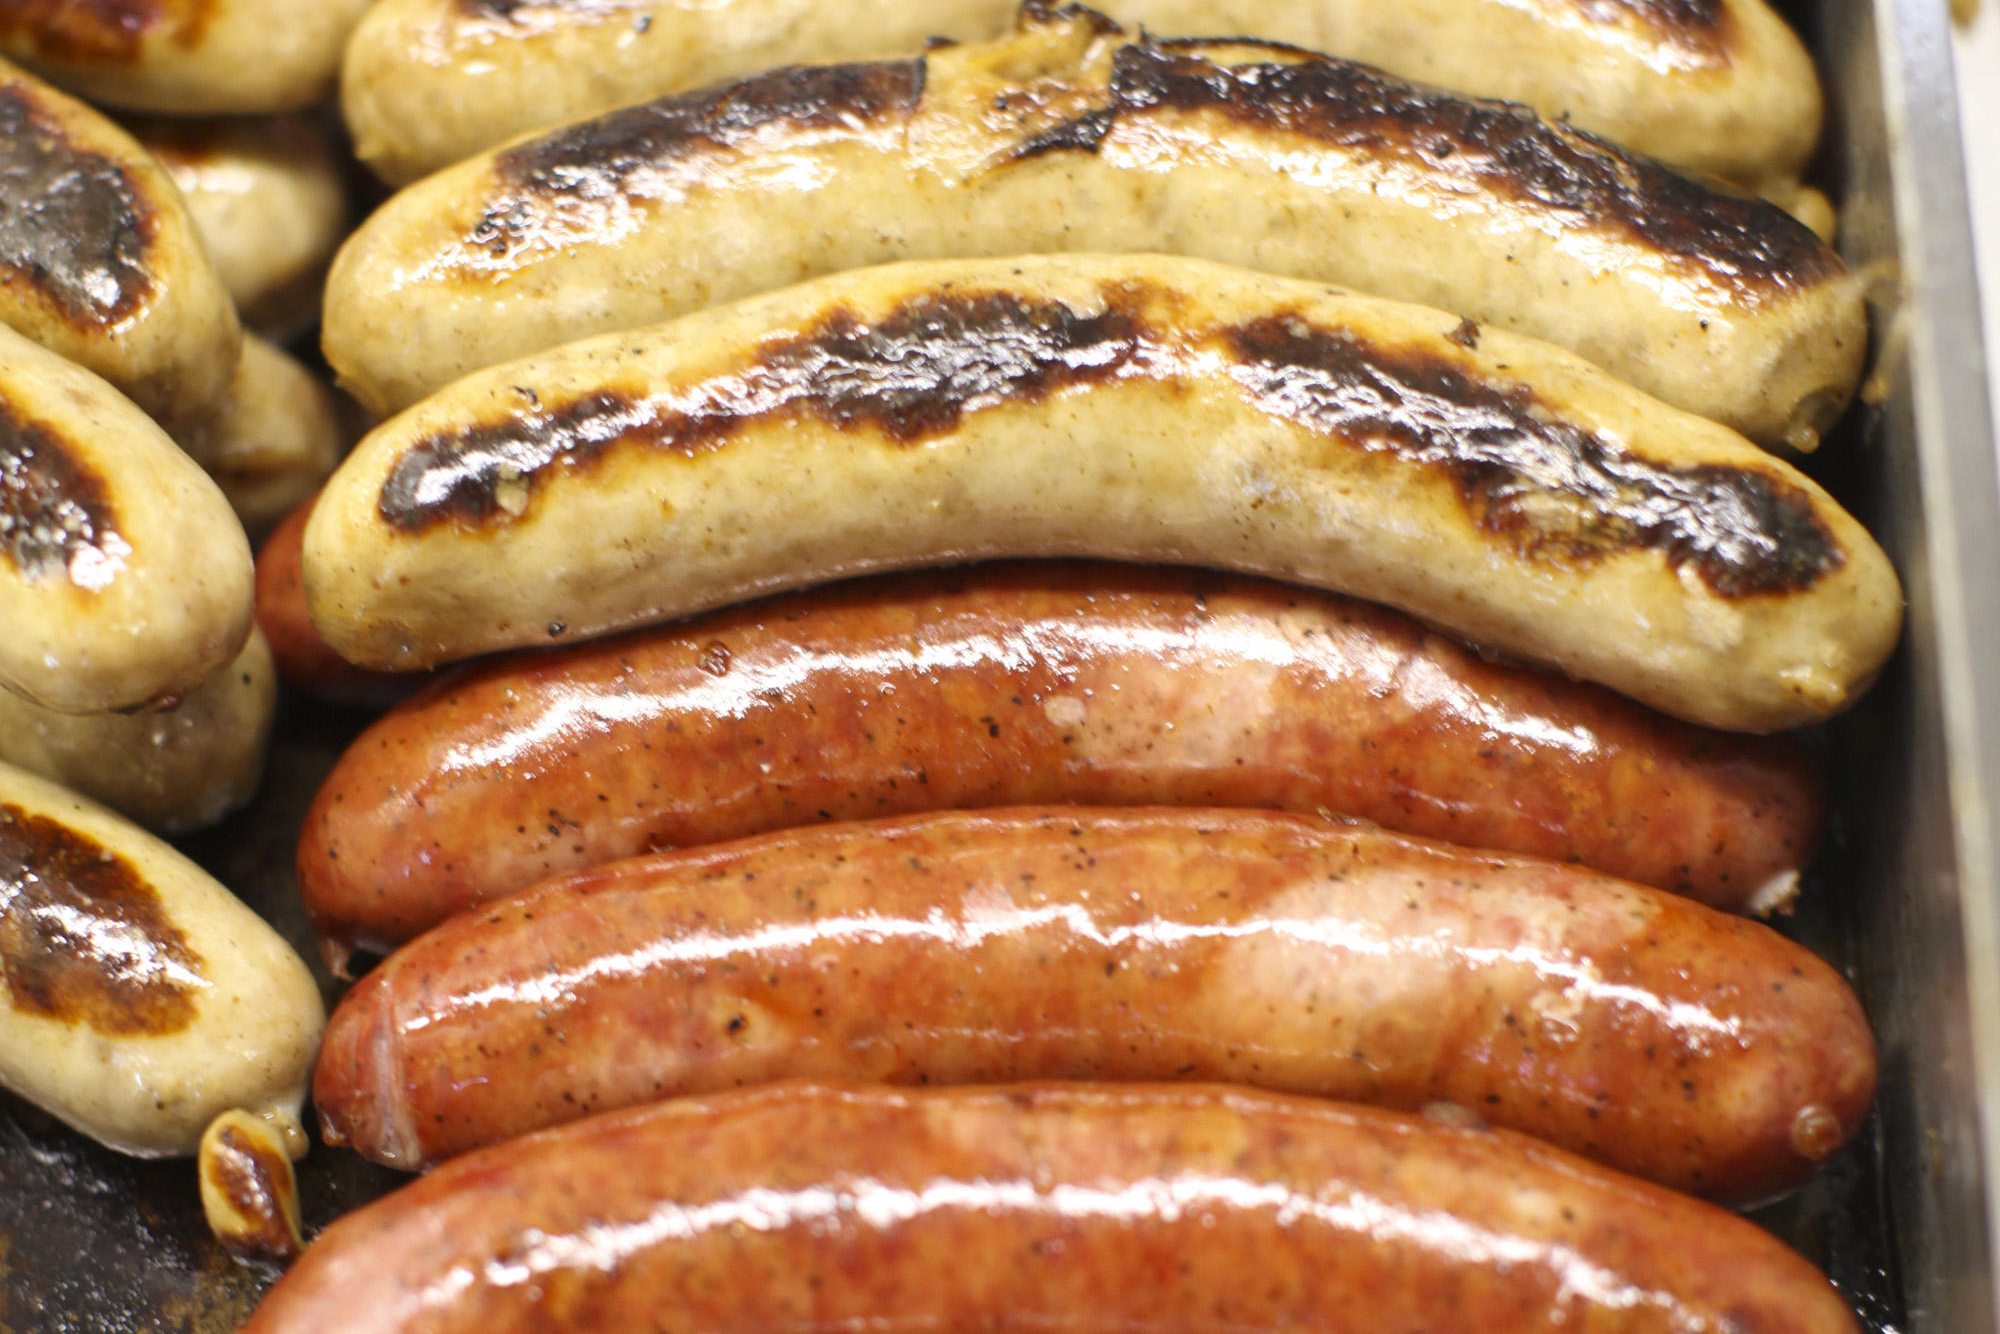 Kramarczuk's Polish sausage and bratwurst are found at two stands on the main concourse level of Target Field, July 16, 2010, Minneapolis.